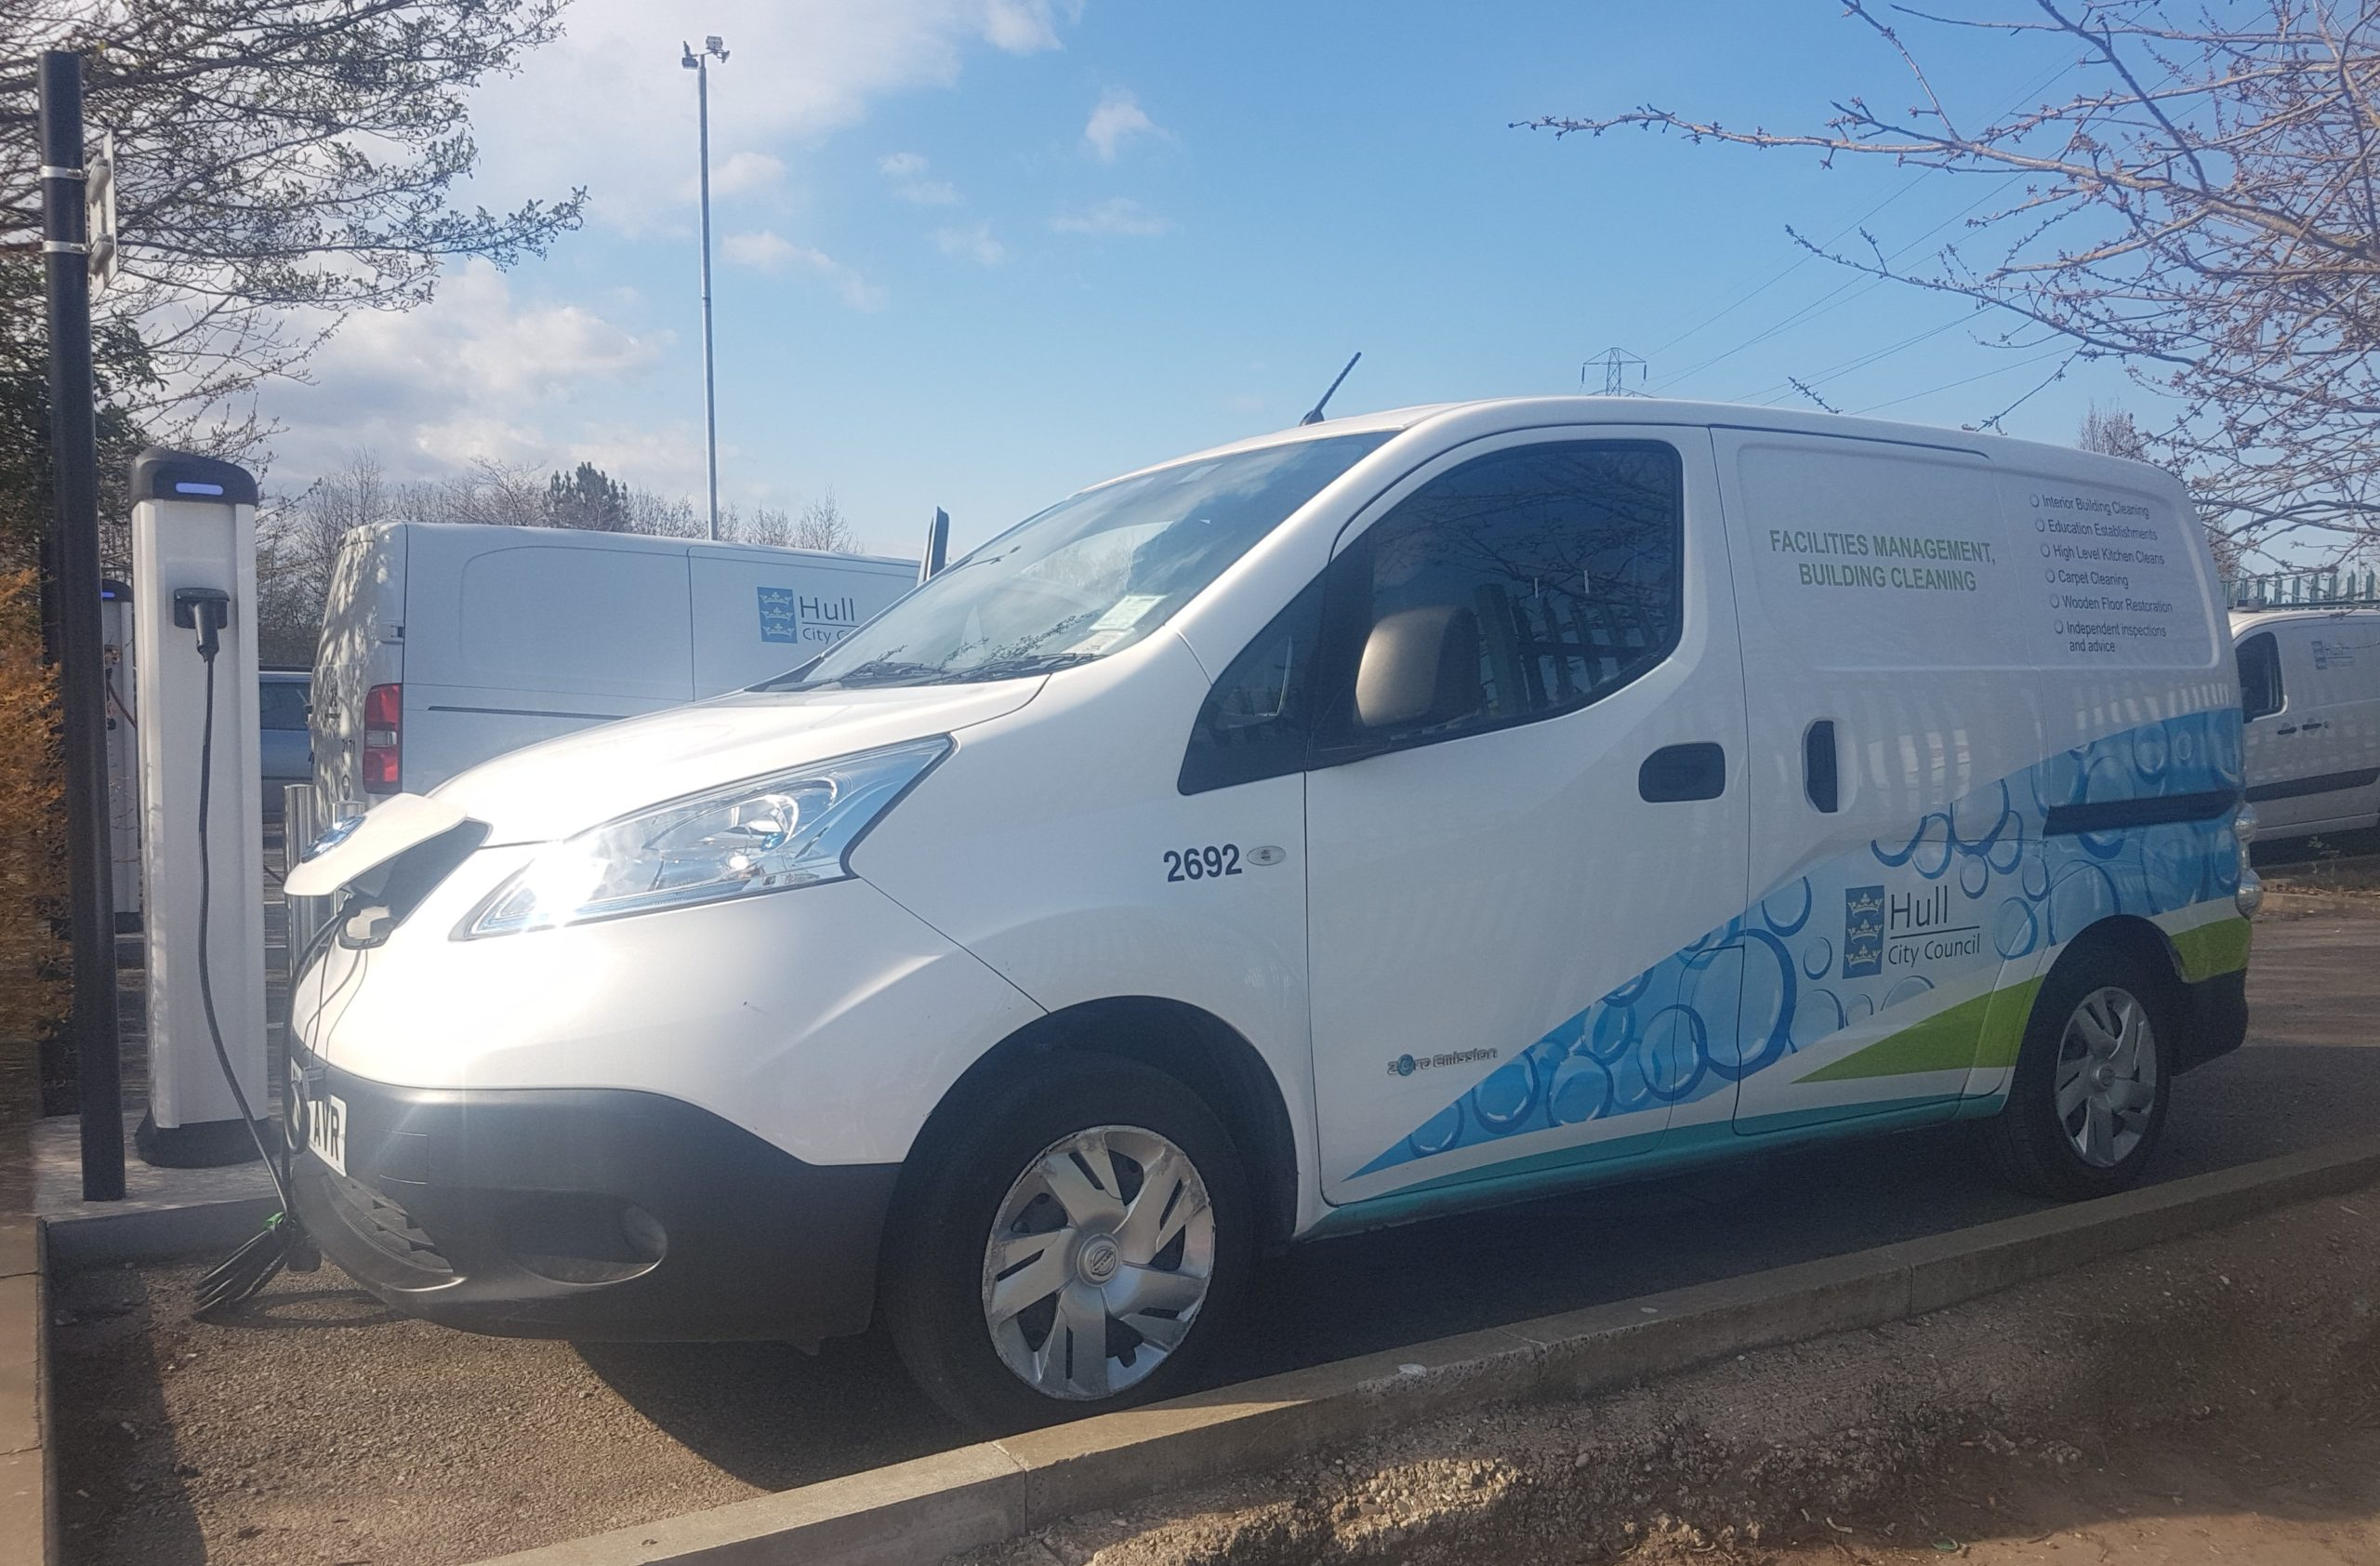 One of Hull City Council's fleet of electric vehicles.